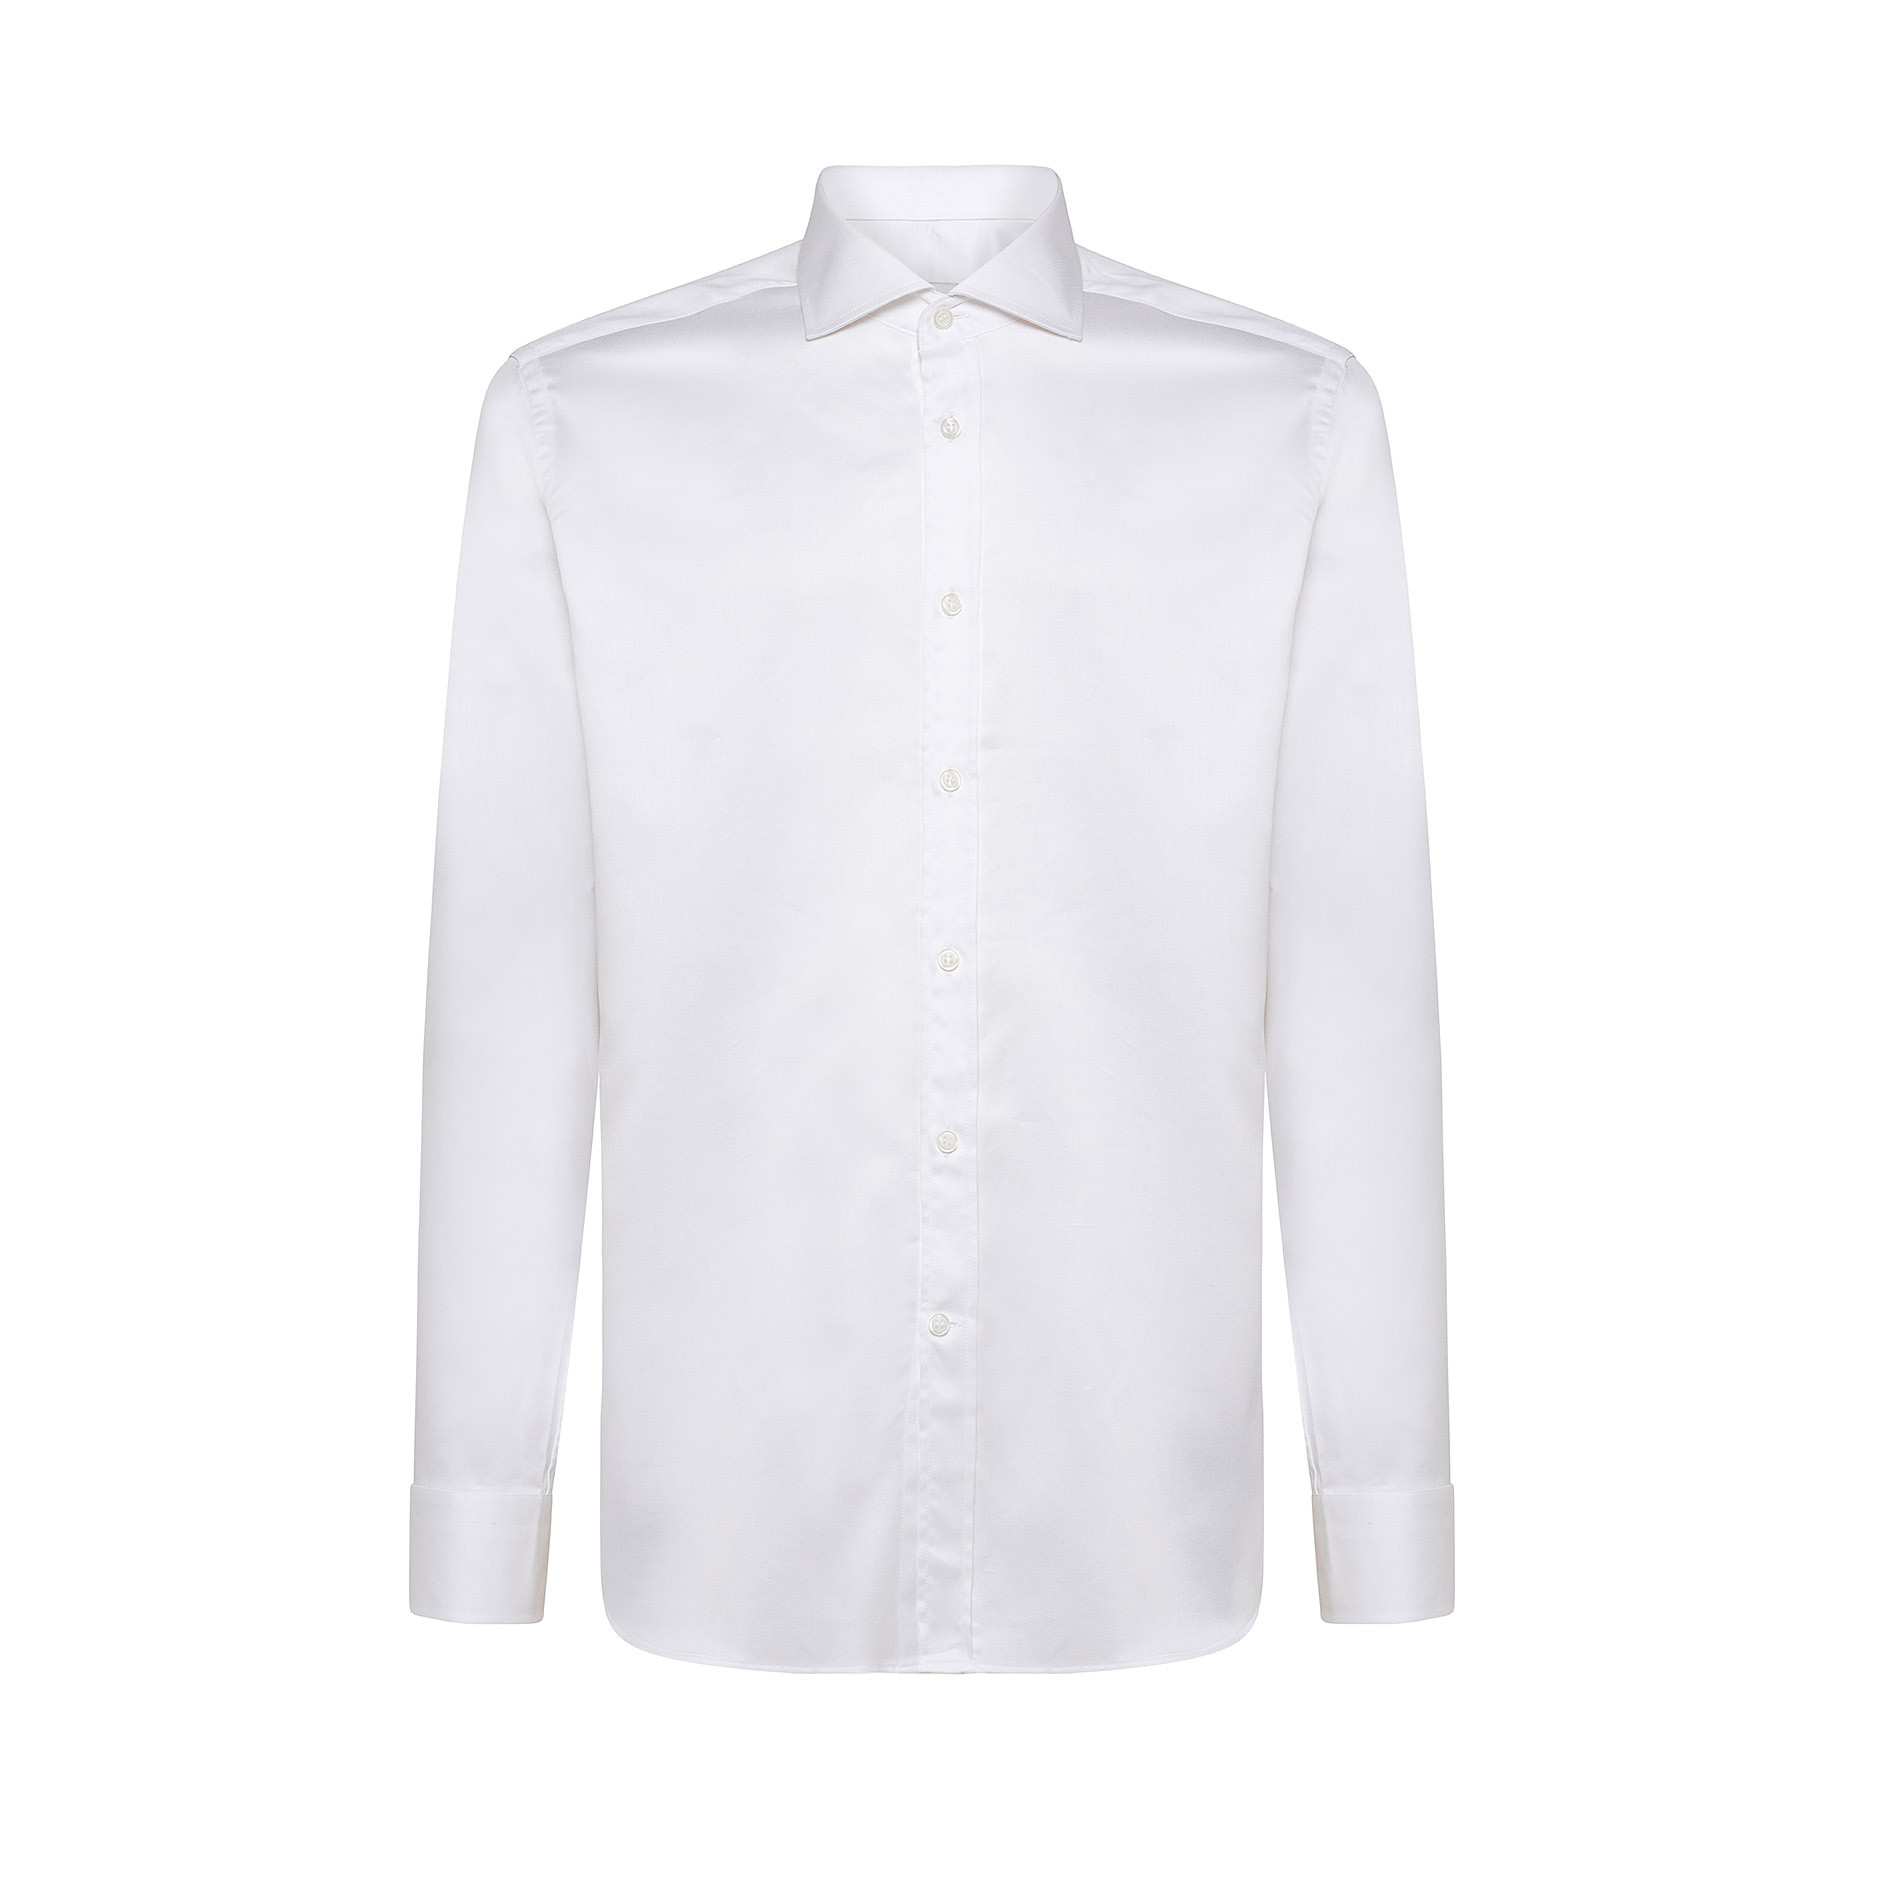 Camicia colletto francese regular fit in cotone, Bianco, large image number 0